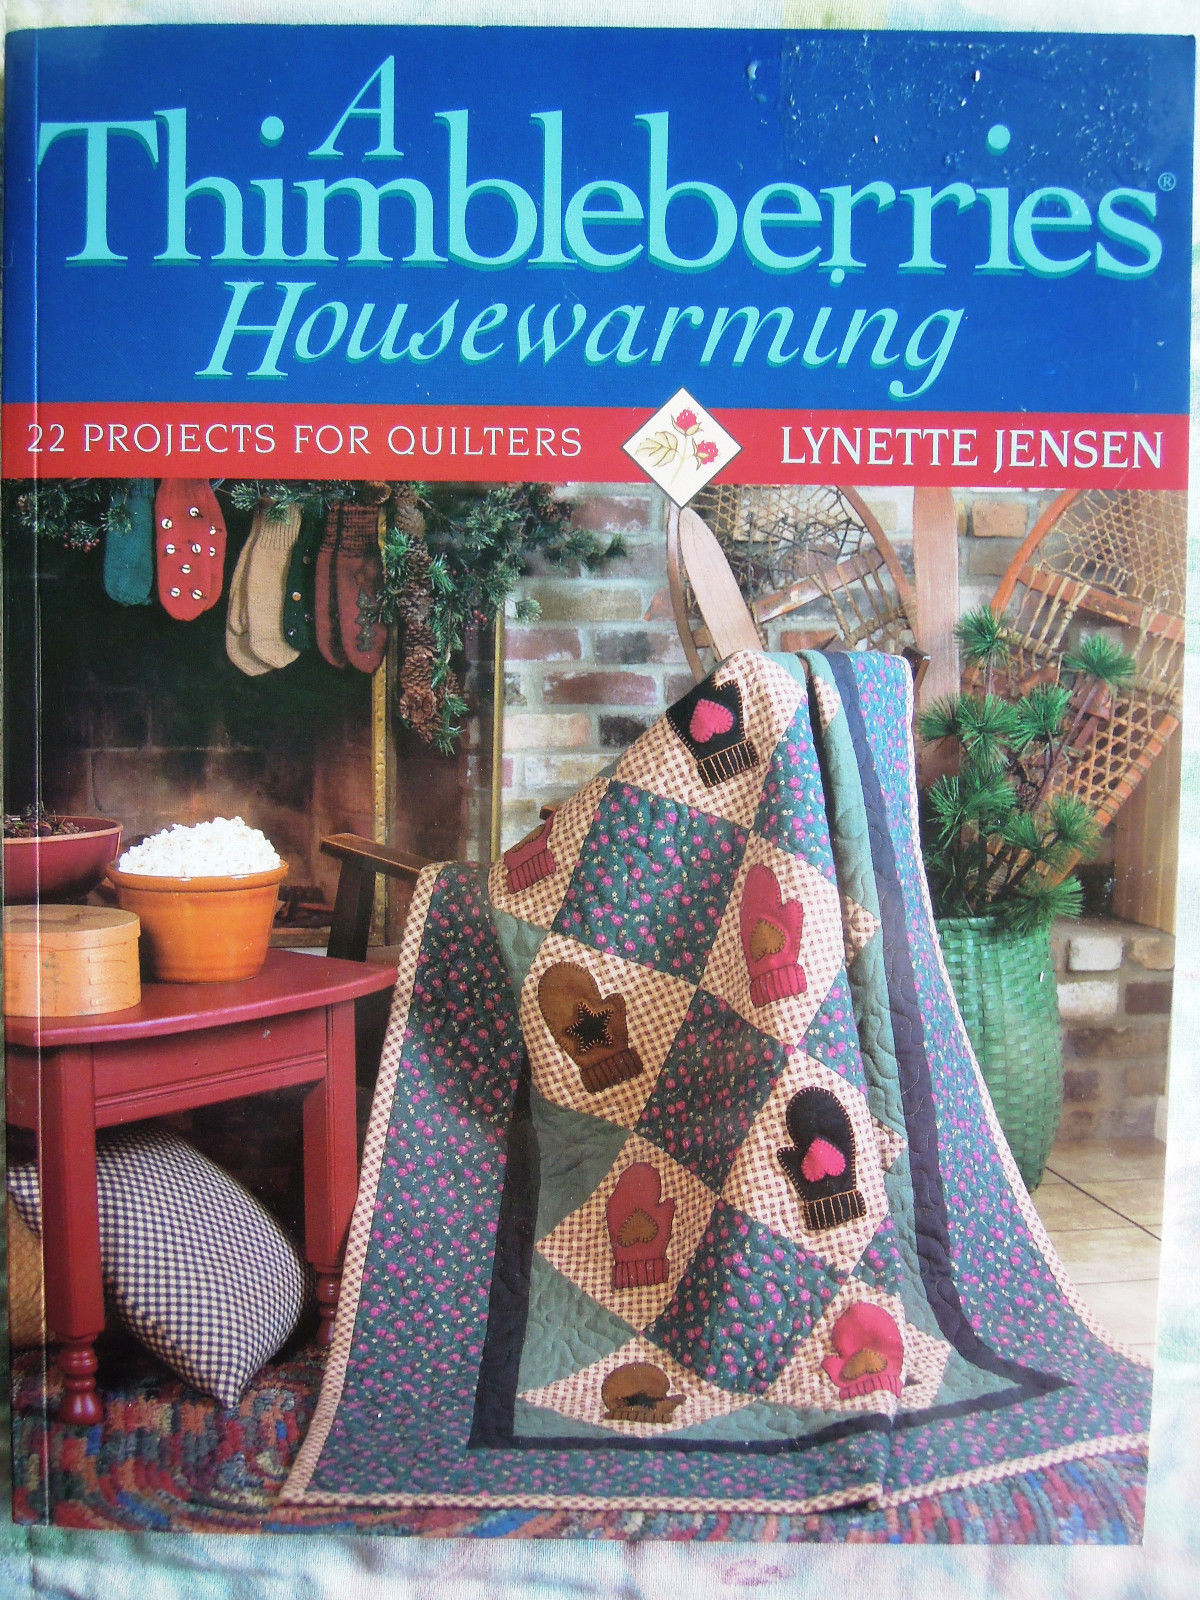 Only $3.99! Thimbleberries quilt book (click!)